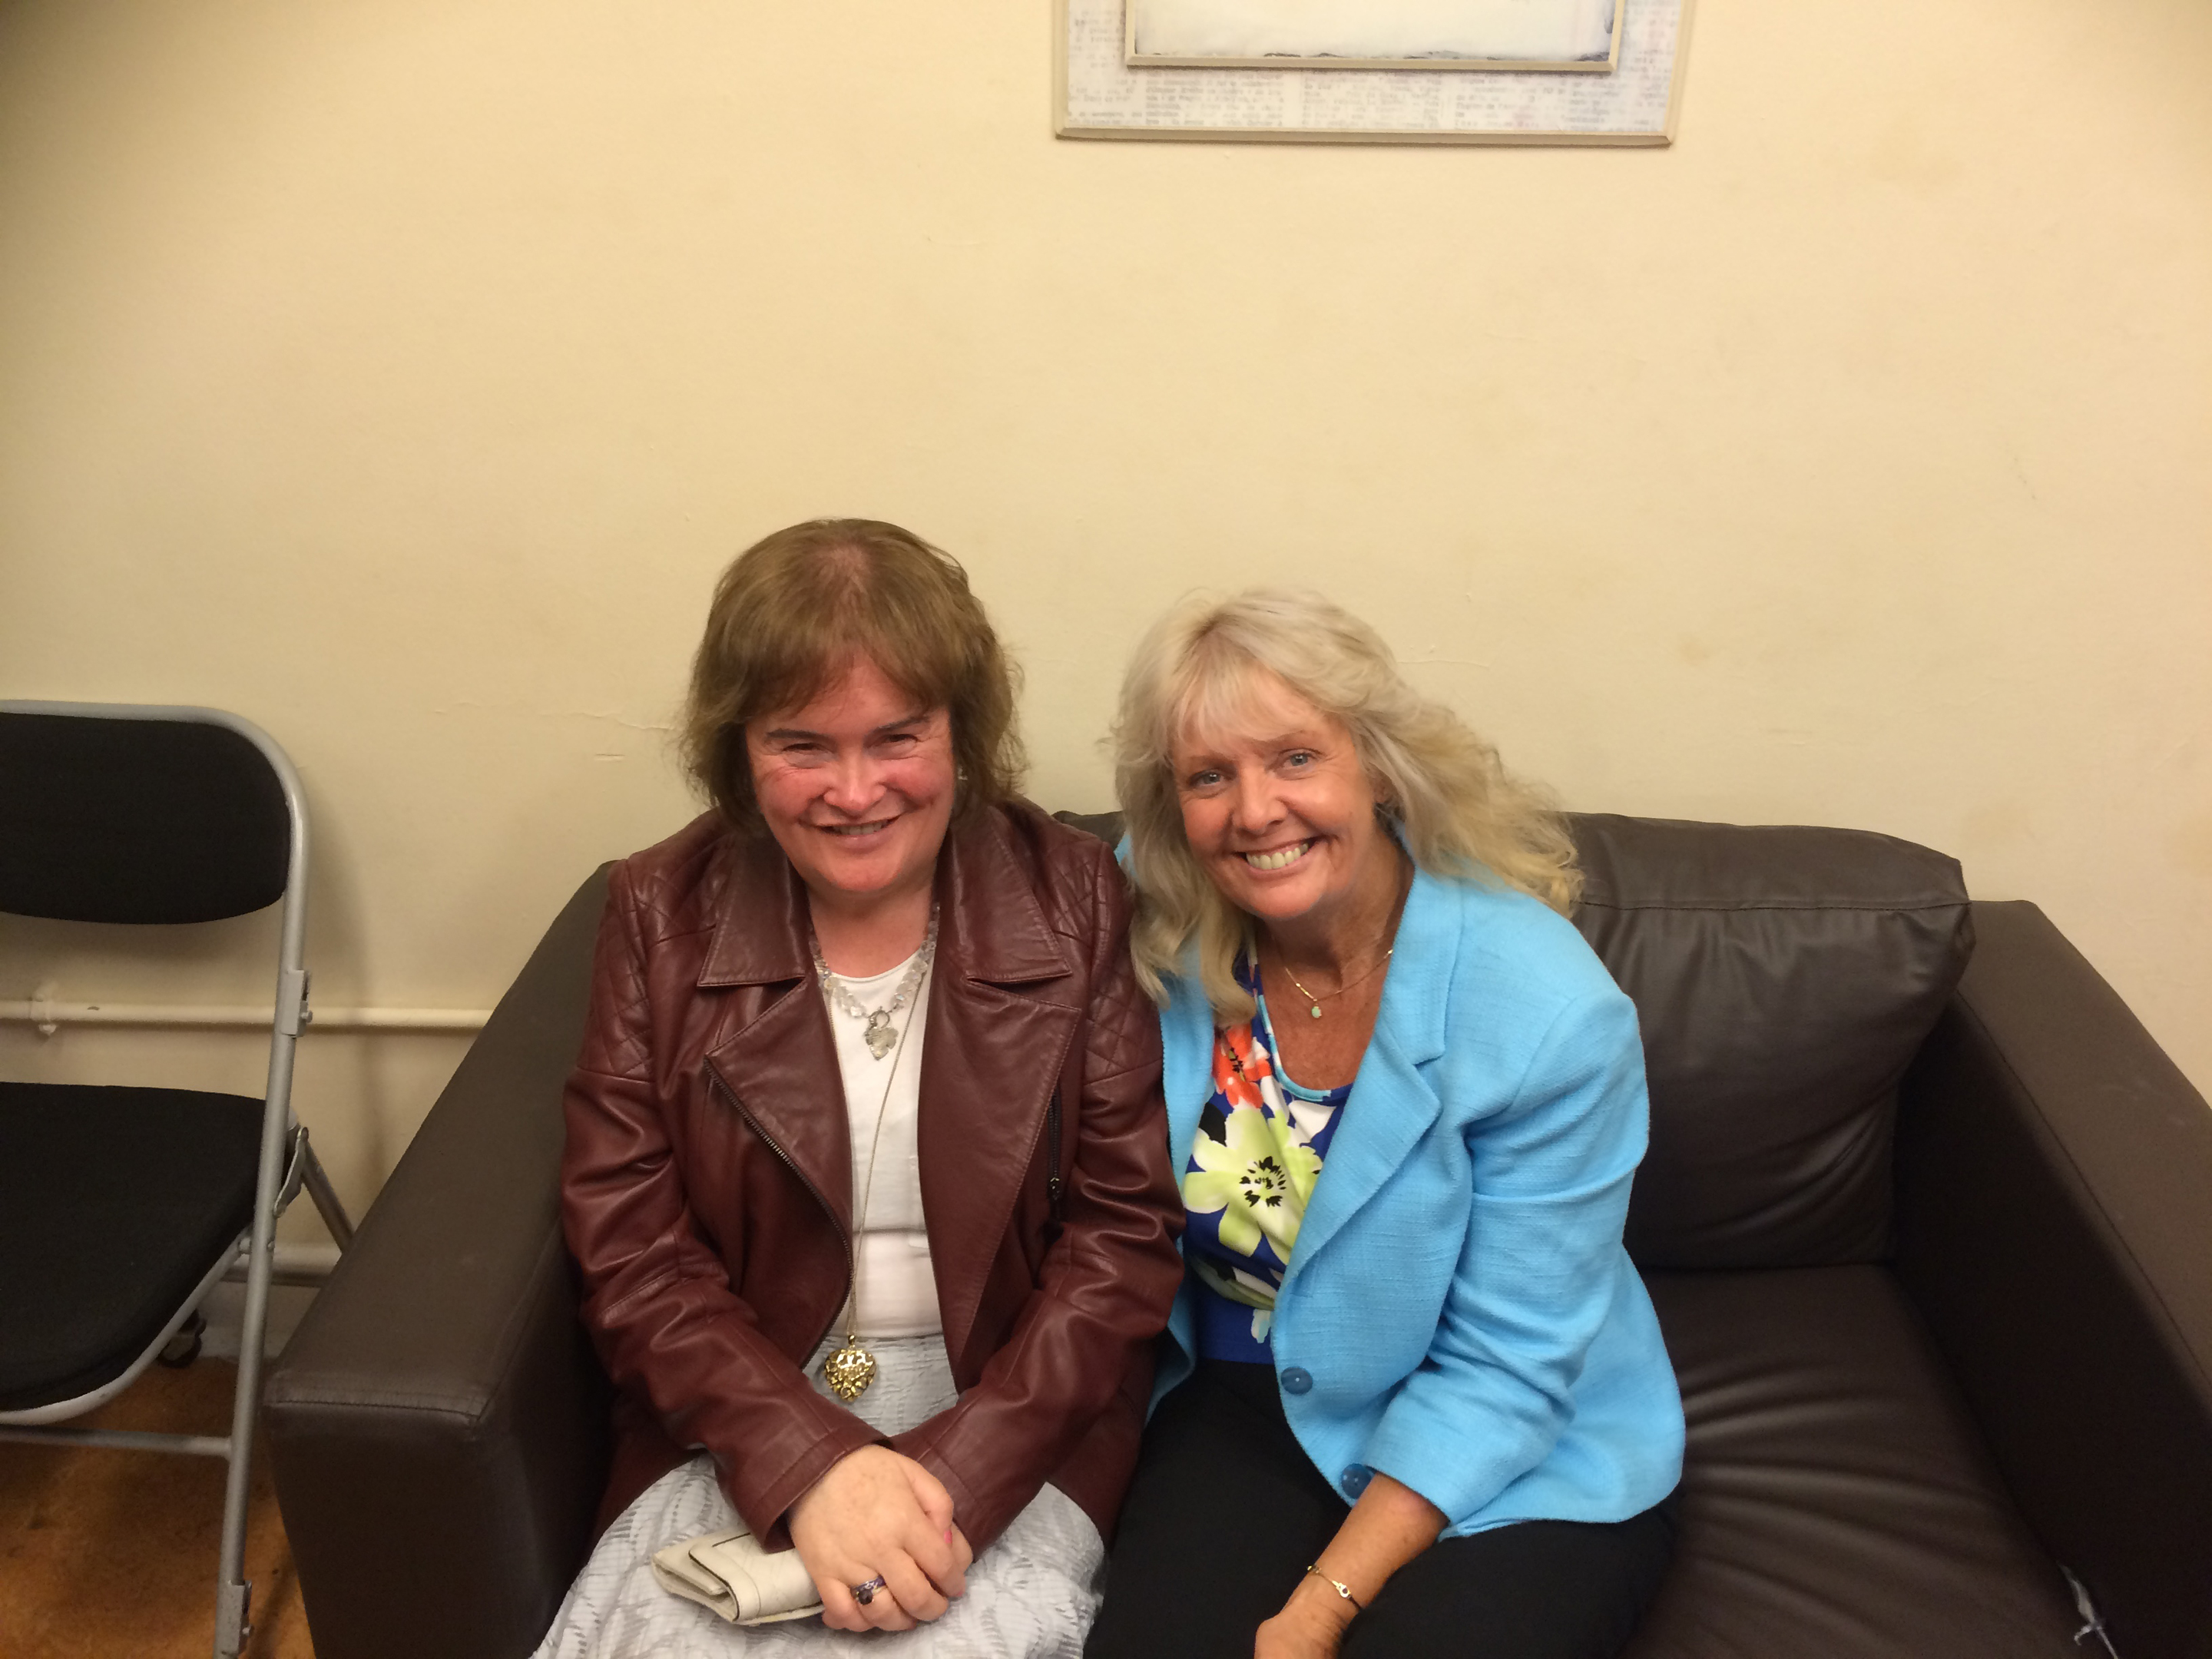 June Field and Susan Boyle